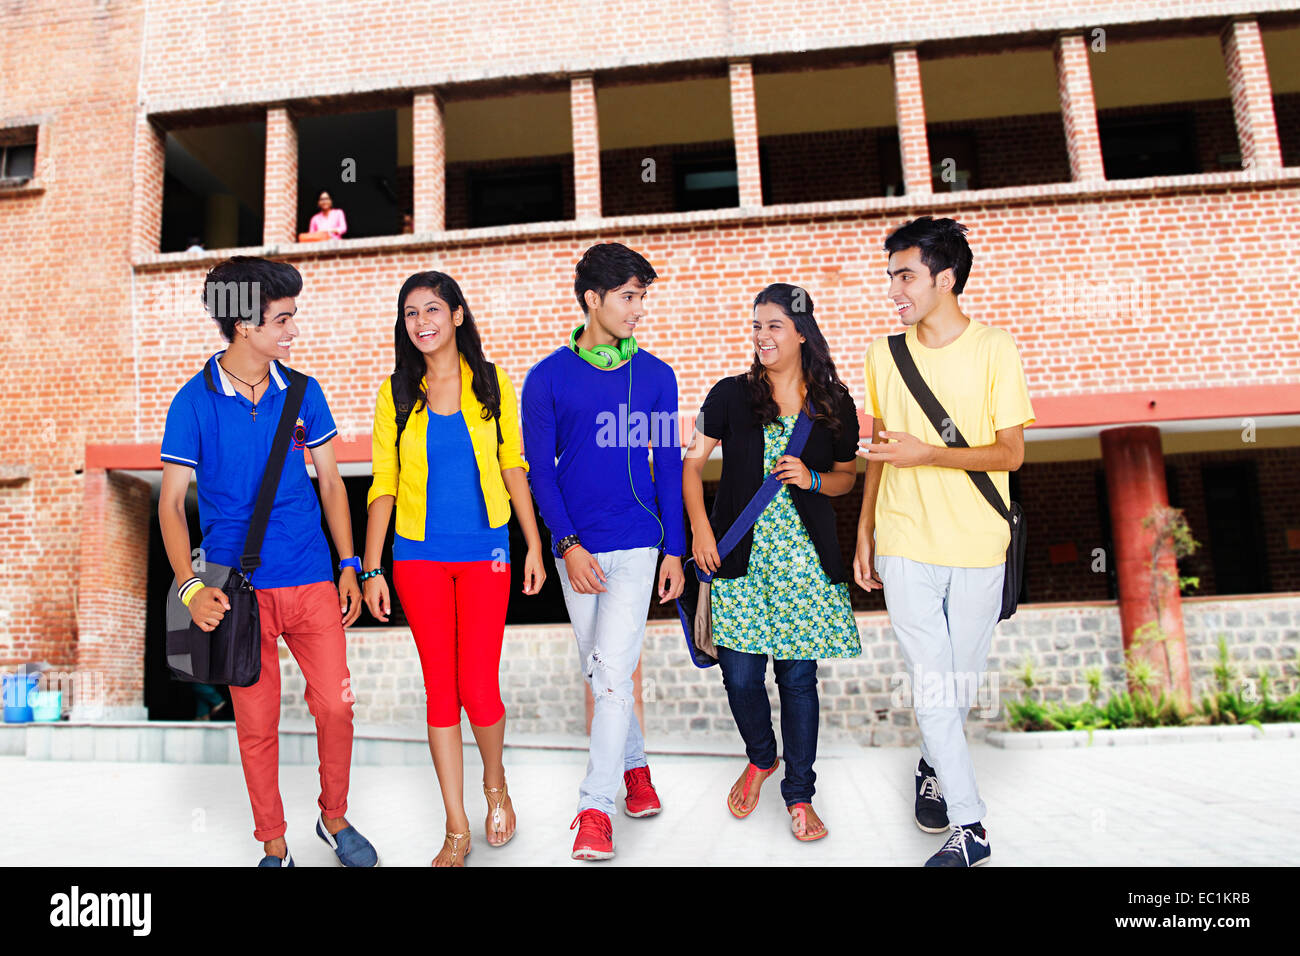 Sarkari Niyukti http://www.nusrlranchi.in/2017/08/01/recruitment-for-faculty-post/ Sarkari Niyukti - Government Jobs in India - सरकारी नियुक्ति | Image Courtesy - http://c8.alamy.com/comp/EC1KRB/indian-college-friends-students-EC1KRB.jpg